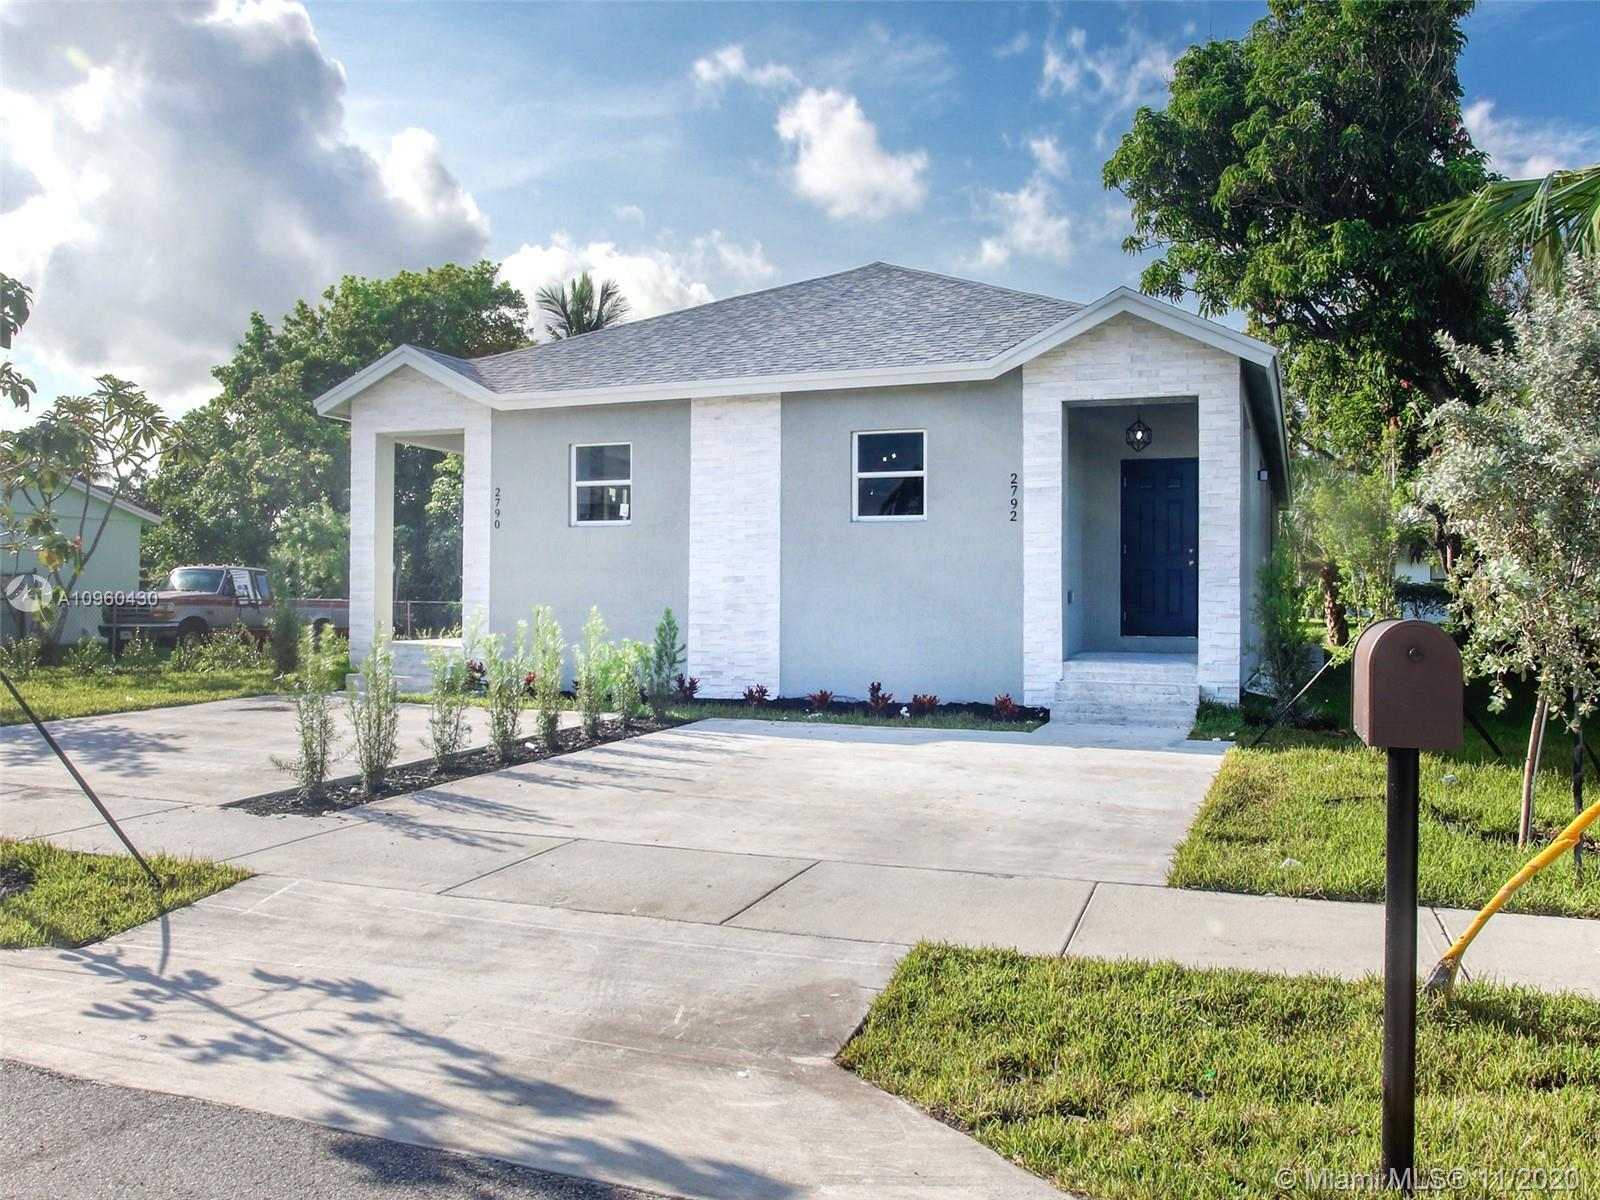 New construction in Fort Lauderdale at a great price. This sale is for 1/2 of a new construction dup